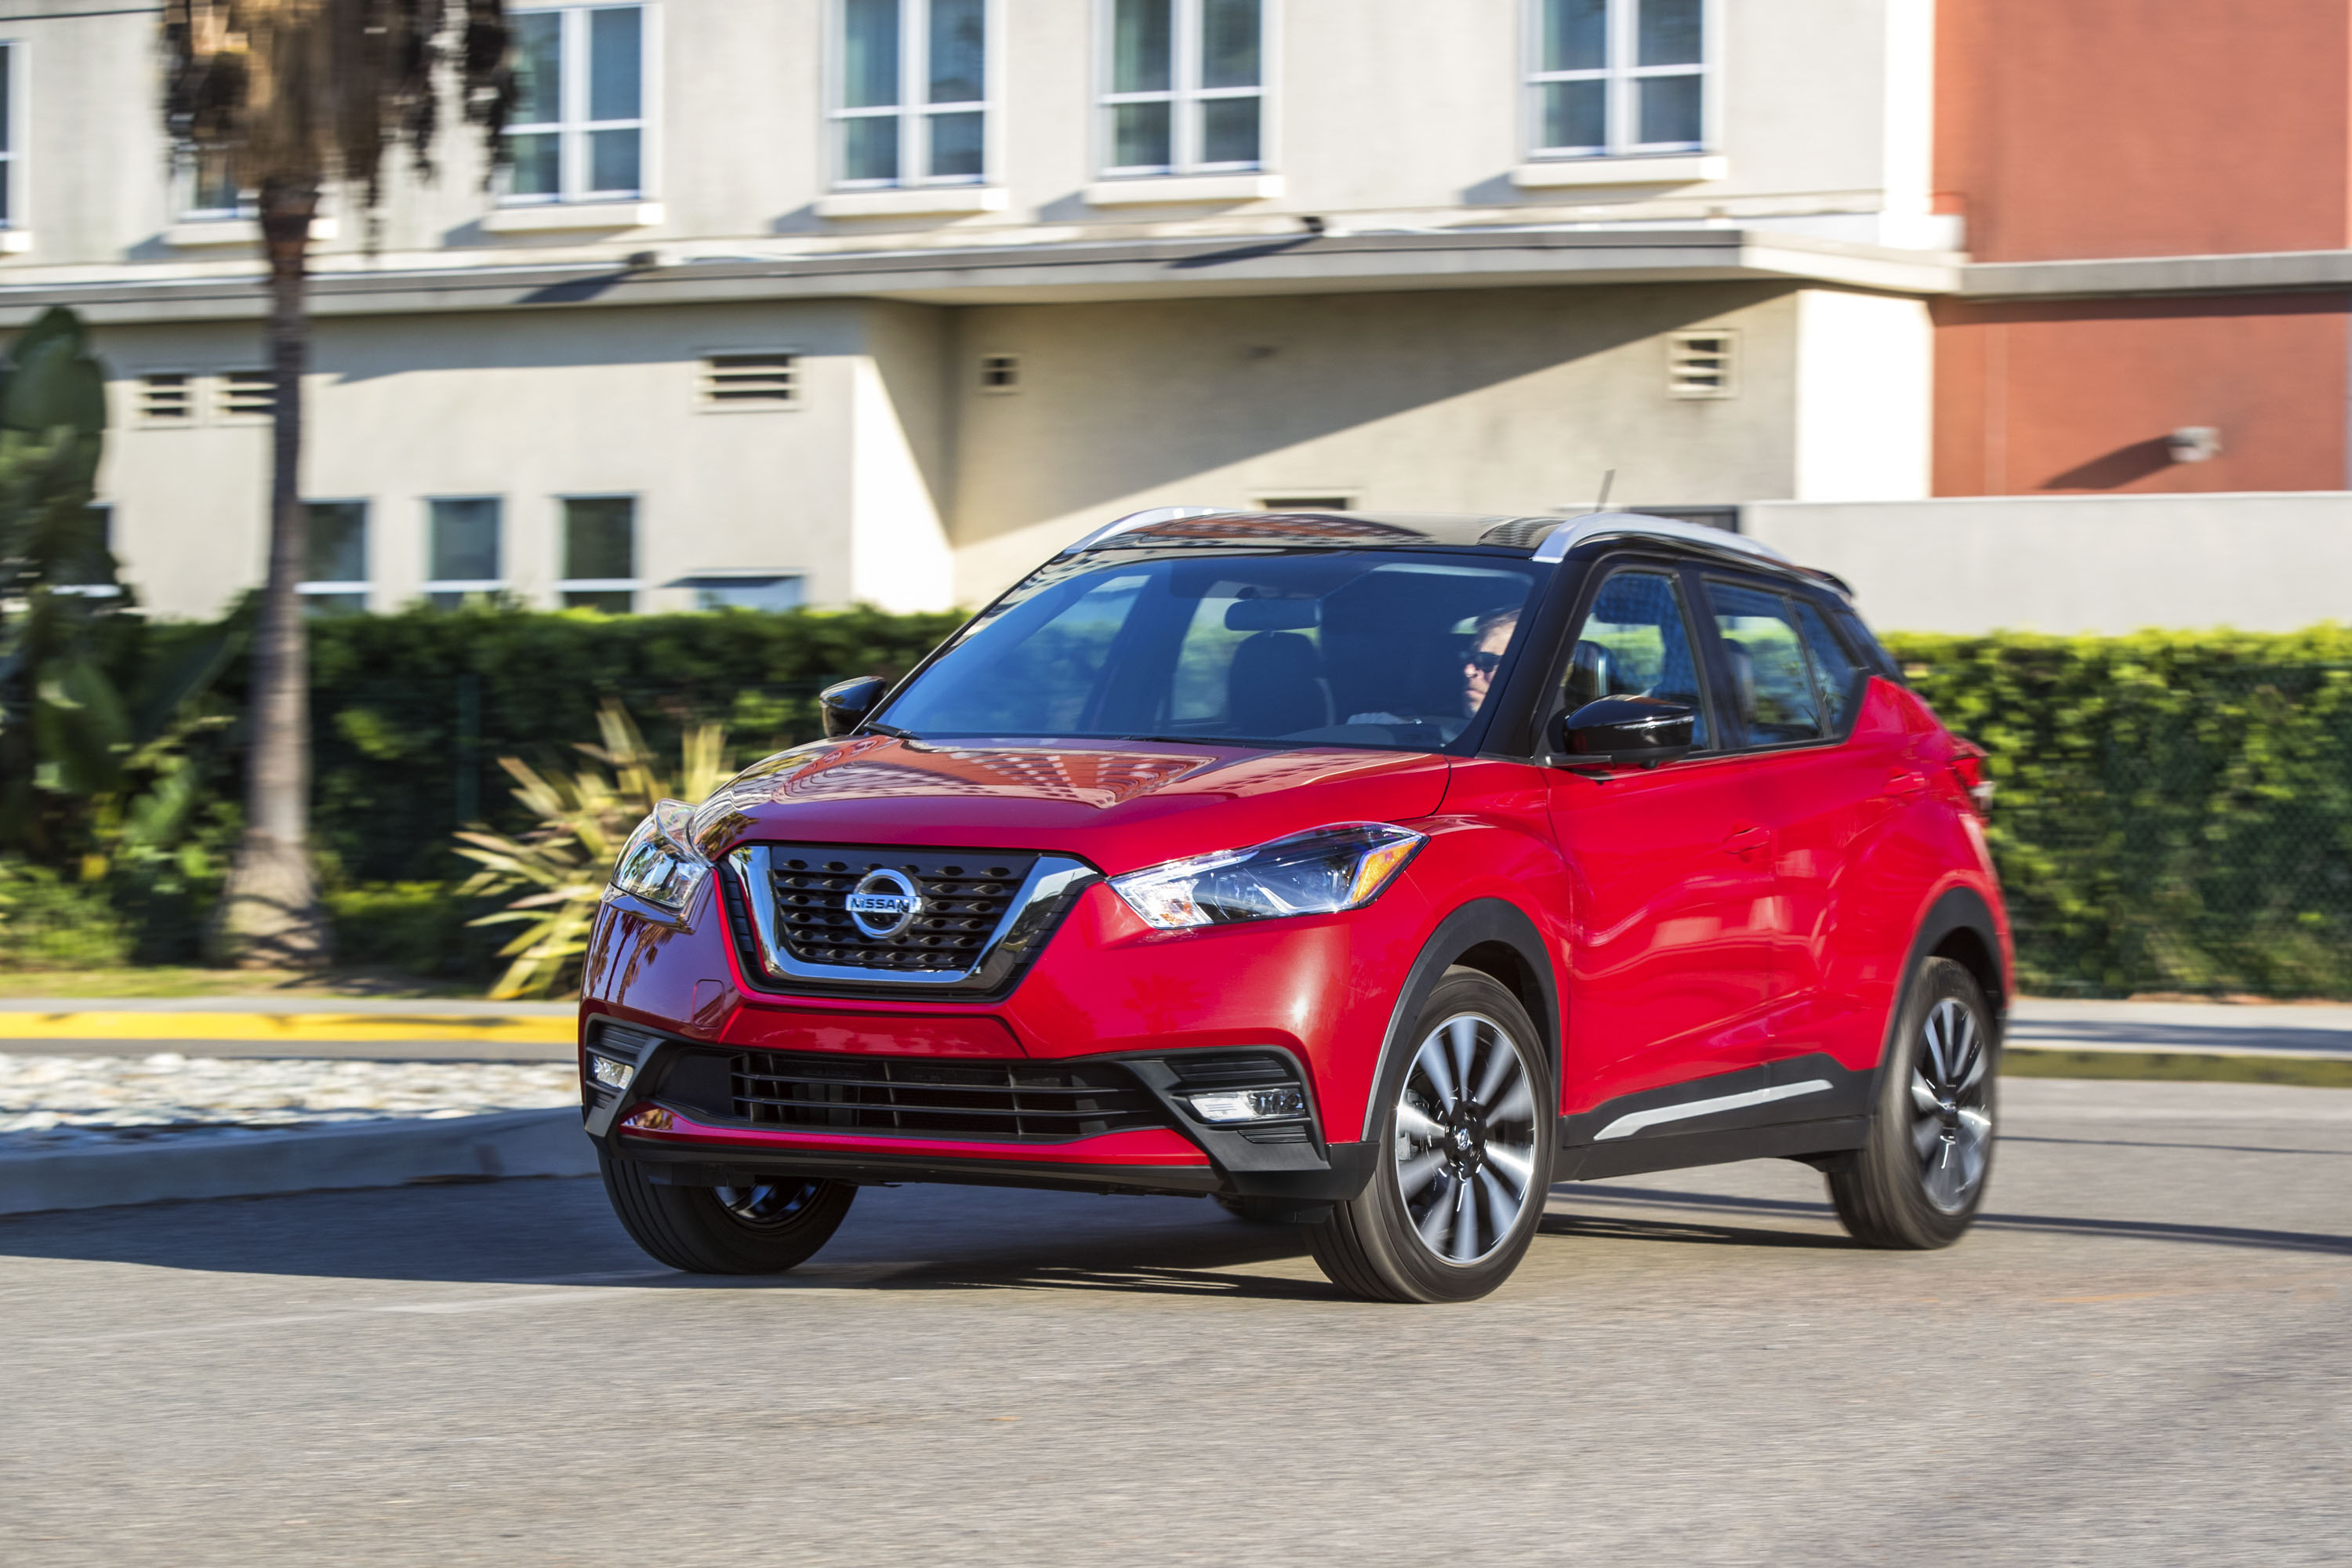 2018 Nissan Kicks   U.S. Spec | Top Speed. »